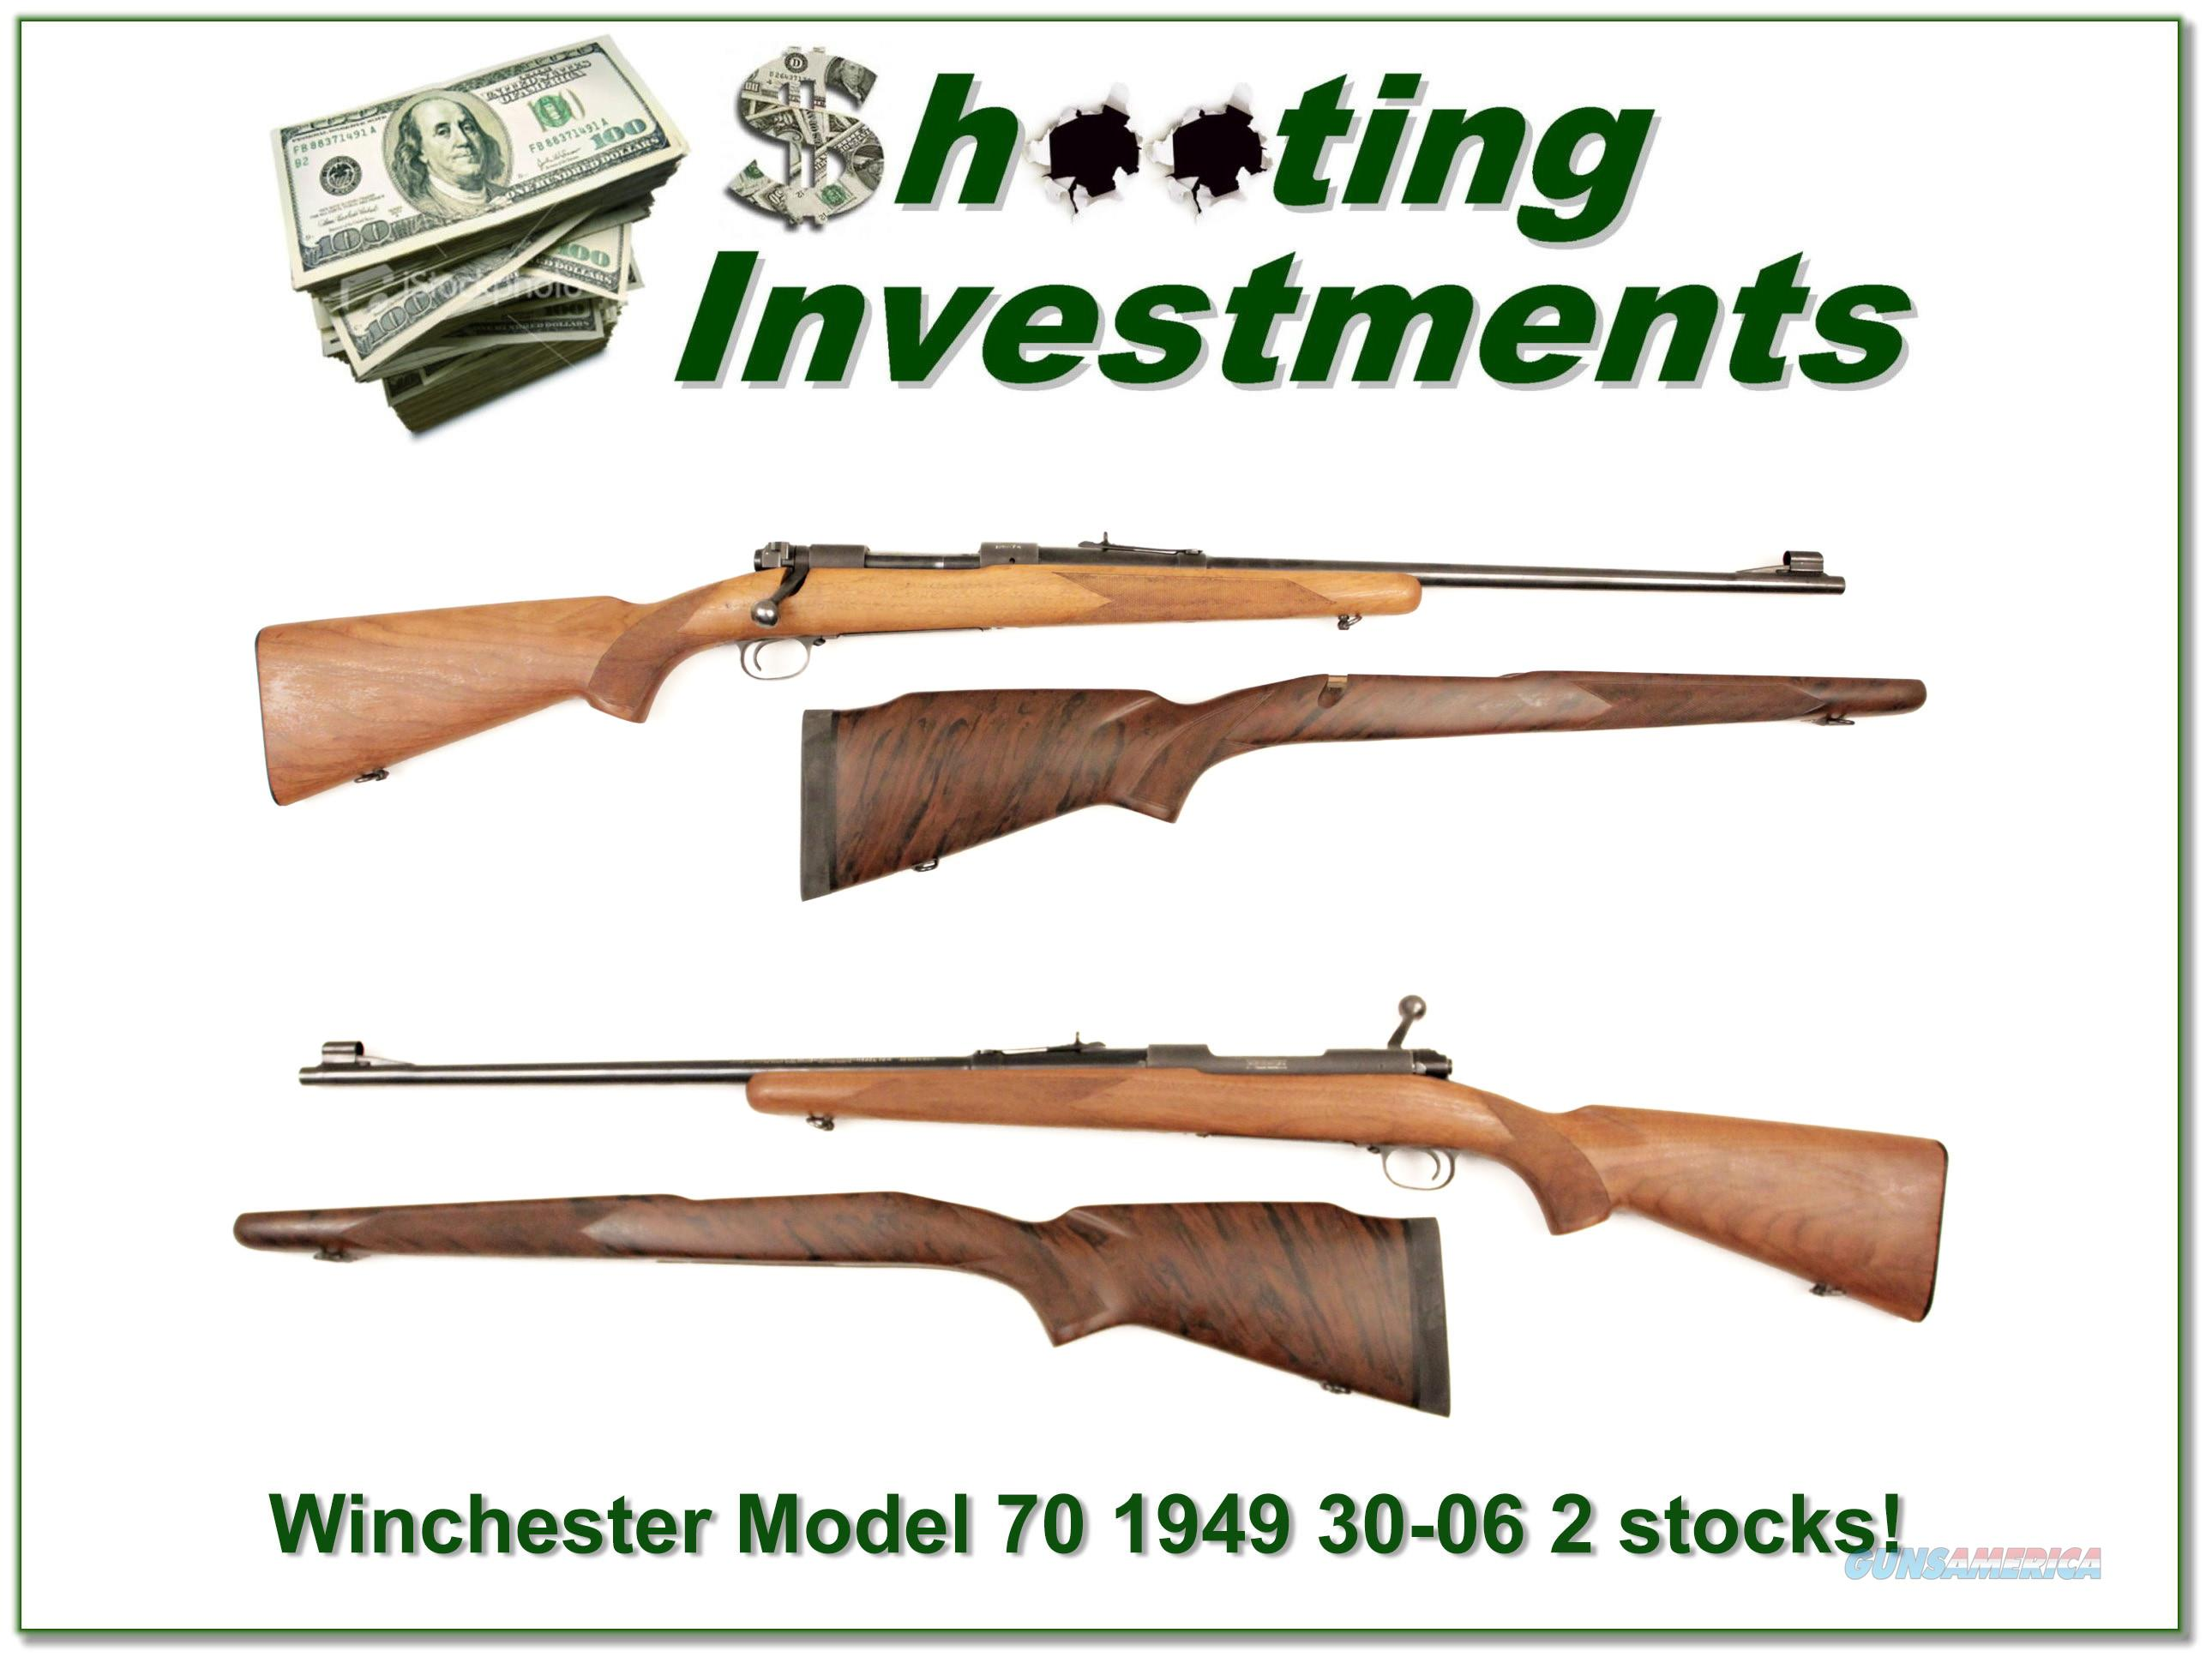 Winchester Model 70 Pre-64 1949 30-06 2 stocks!  Guns > Rifles > Winchester Rifles - Modern Bolt/Auto/Single > Model 70 > Pre-64